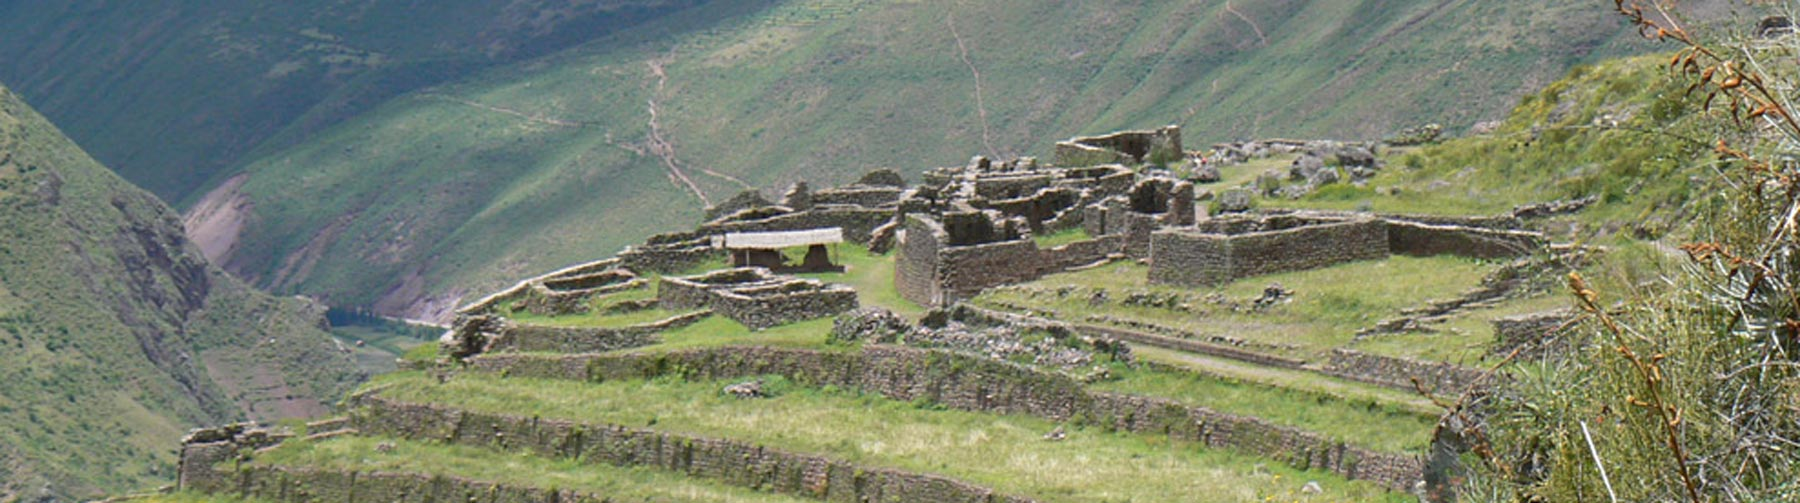 Exploring the Sacred Valley: From Cusco to Ollantaytambo